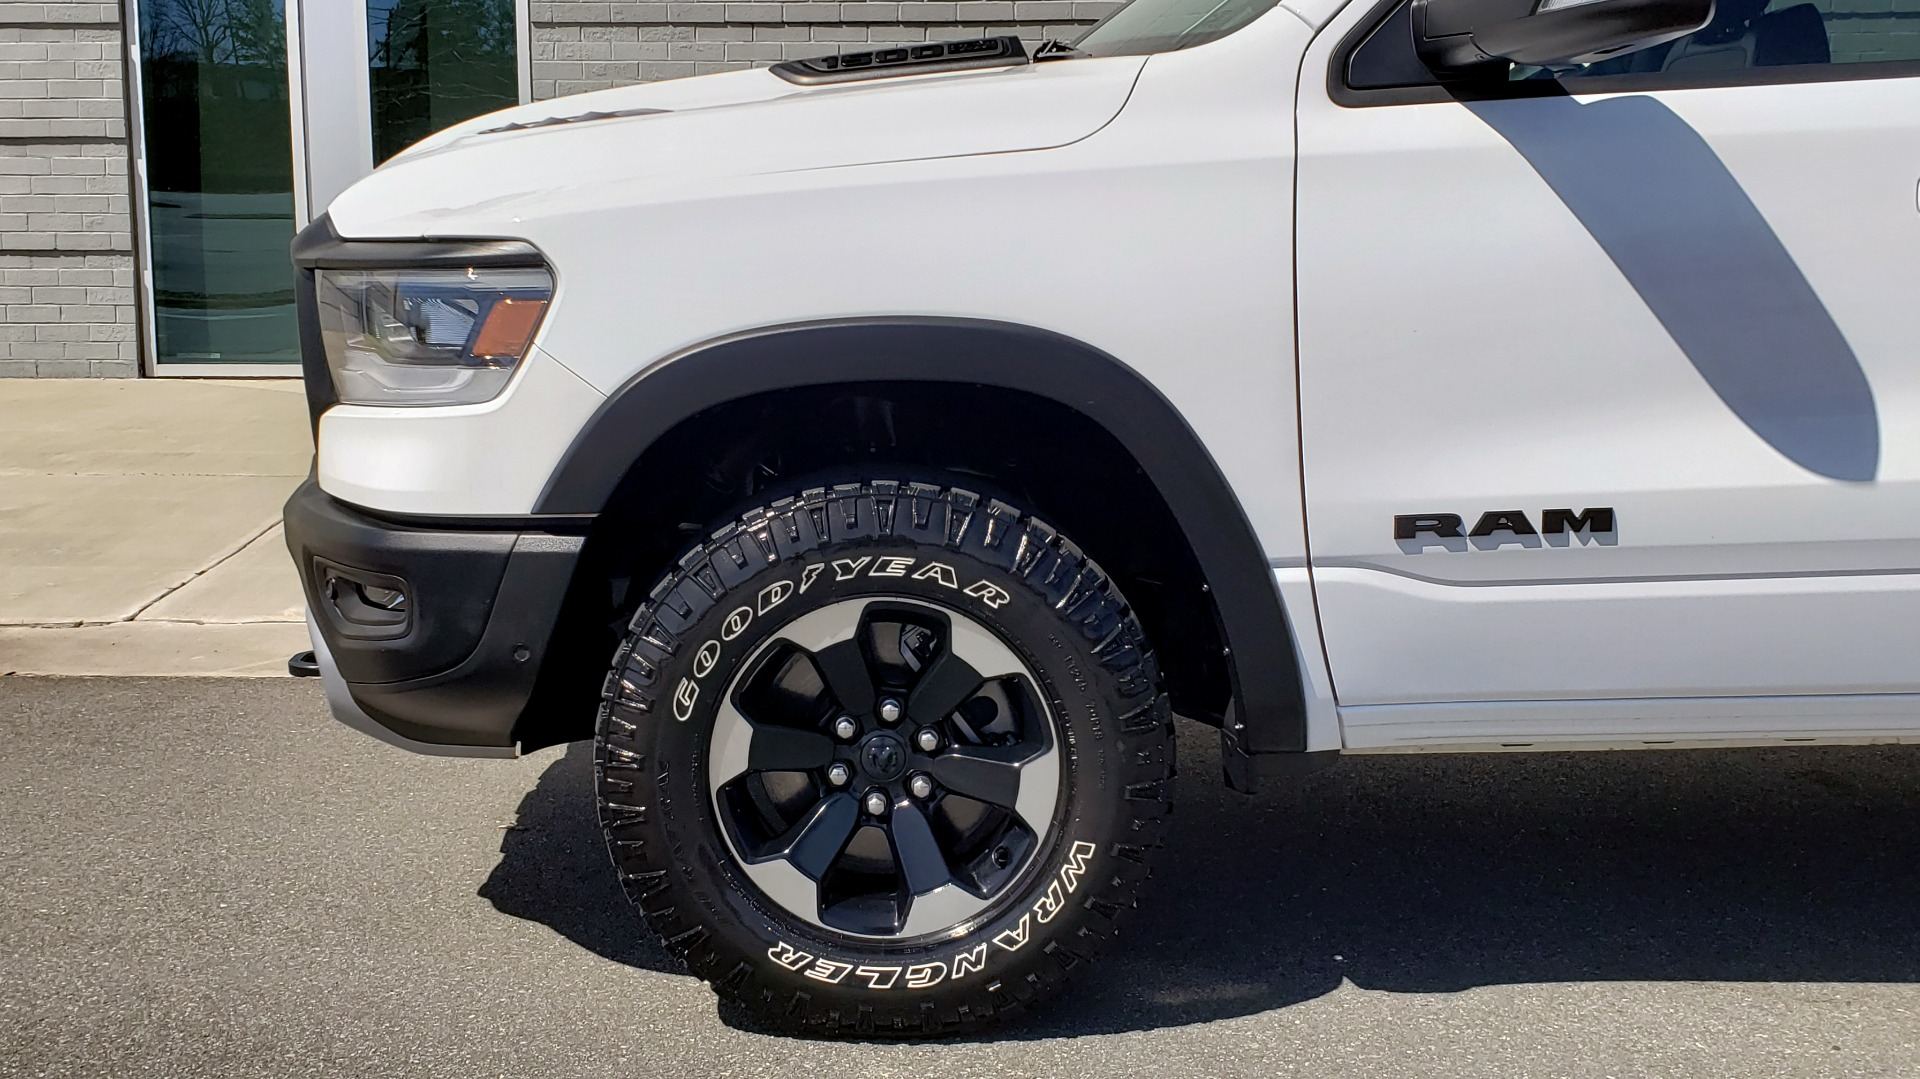 Used 2019 Ram 1500 REBEL CREWCAB 4X4 / 5.7L V8 HEMI / 8-SPD AUTO / REARVIEW for sale Sold at Formula Imports in Charlotte NC 28227 85